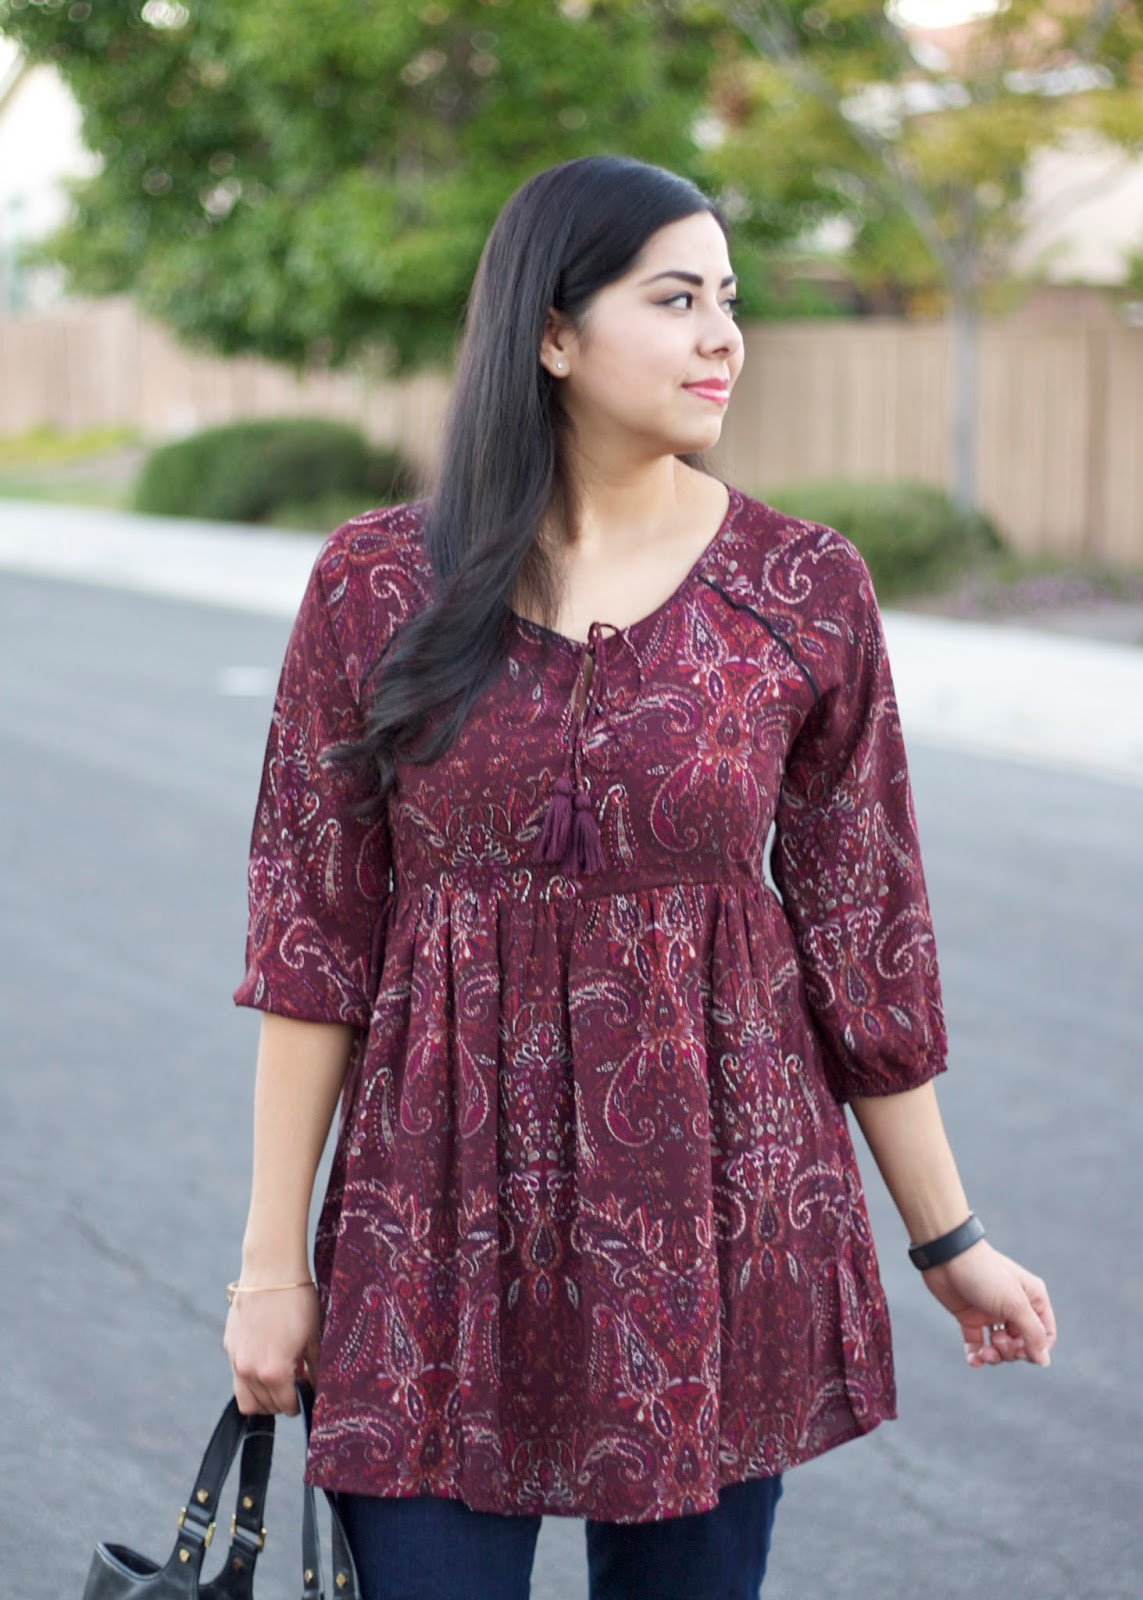 maroon paisley tunic, brunette fashion blogger, mexican fashion blogger, latina fashion blogger, tassels on a blouse